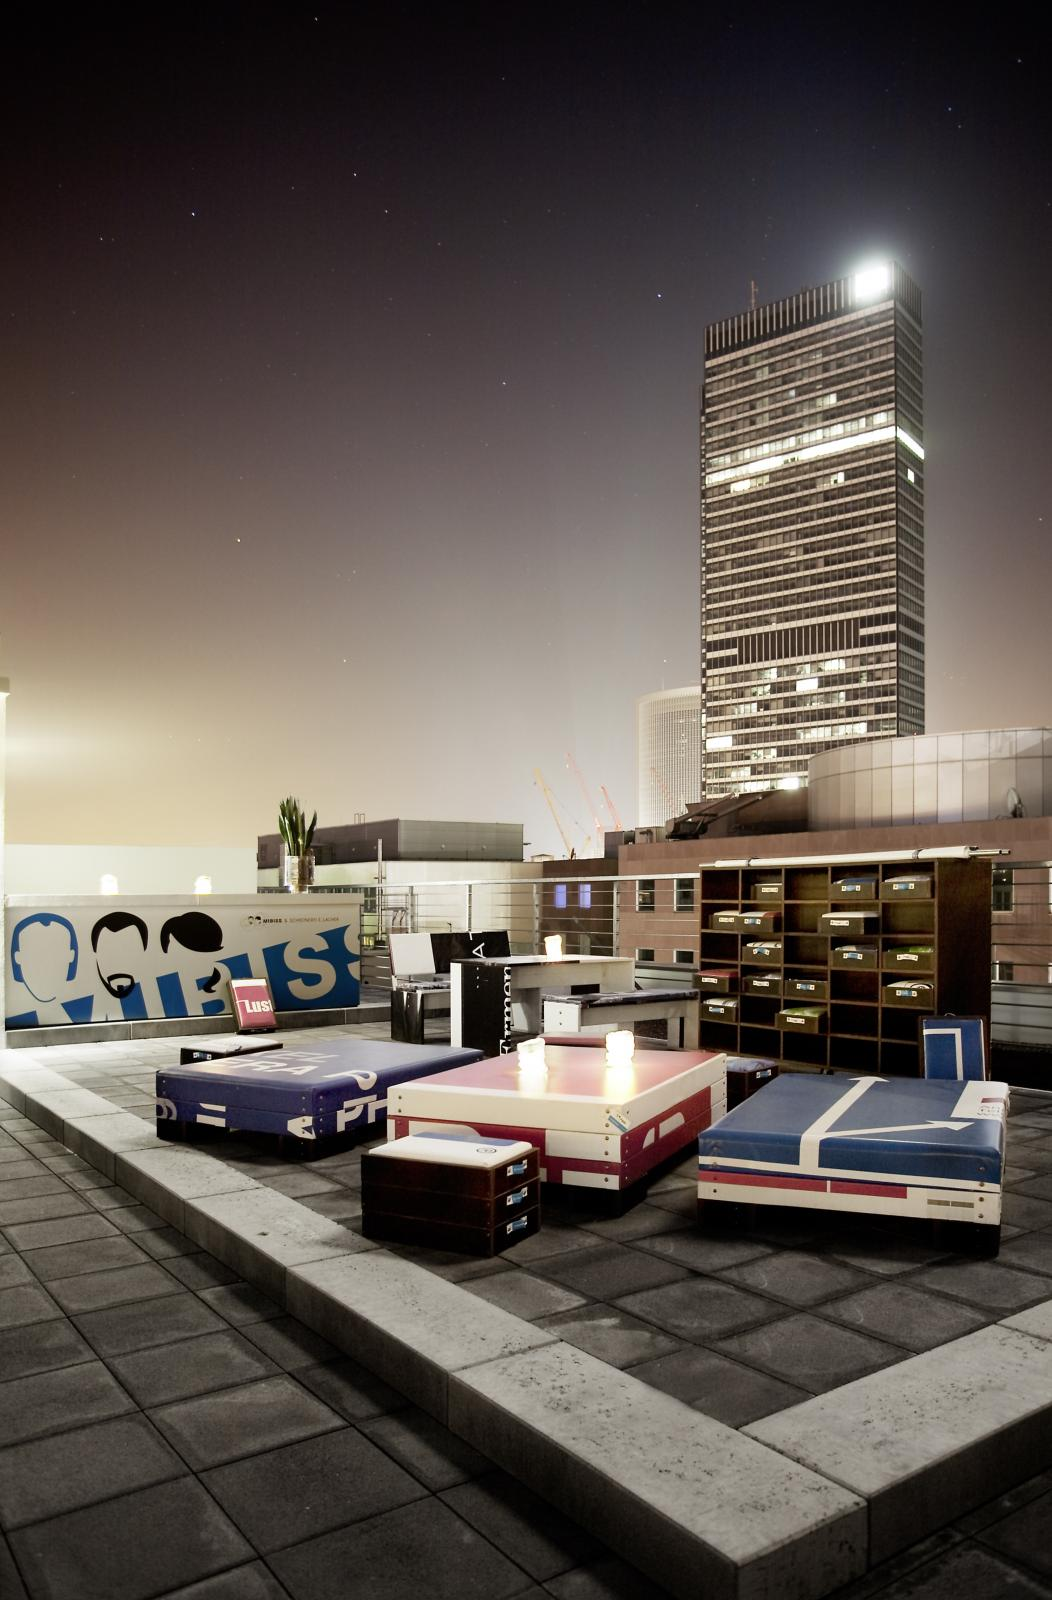 city trip frankfurt 25hours hotel by levi s the random noise. Black Bedroom Furniture Sets. Home Design Ideas